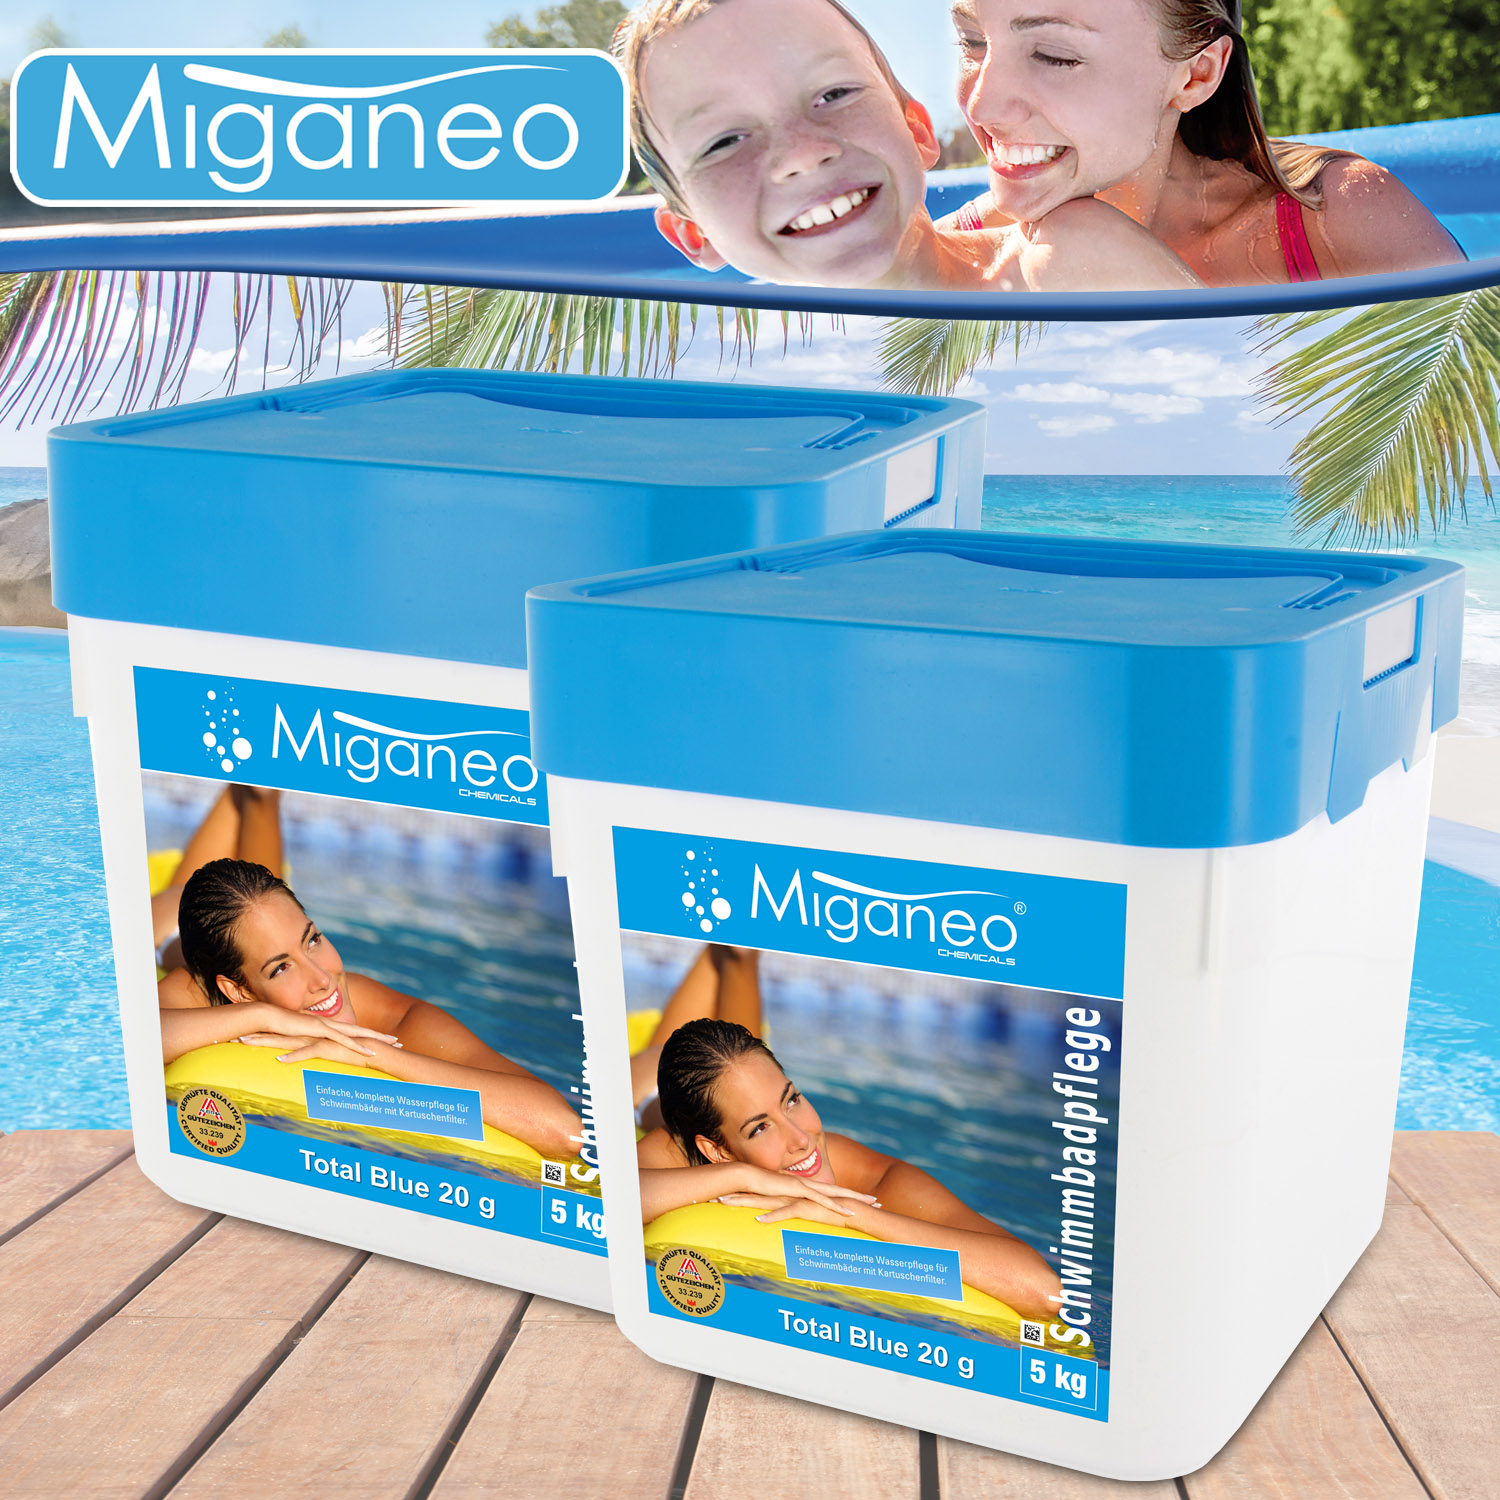 miganeo blue power tabs 2 x 5kg multitabs 5 in 1. Black Bedroom Furniture Sets. Home Design Ideas